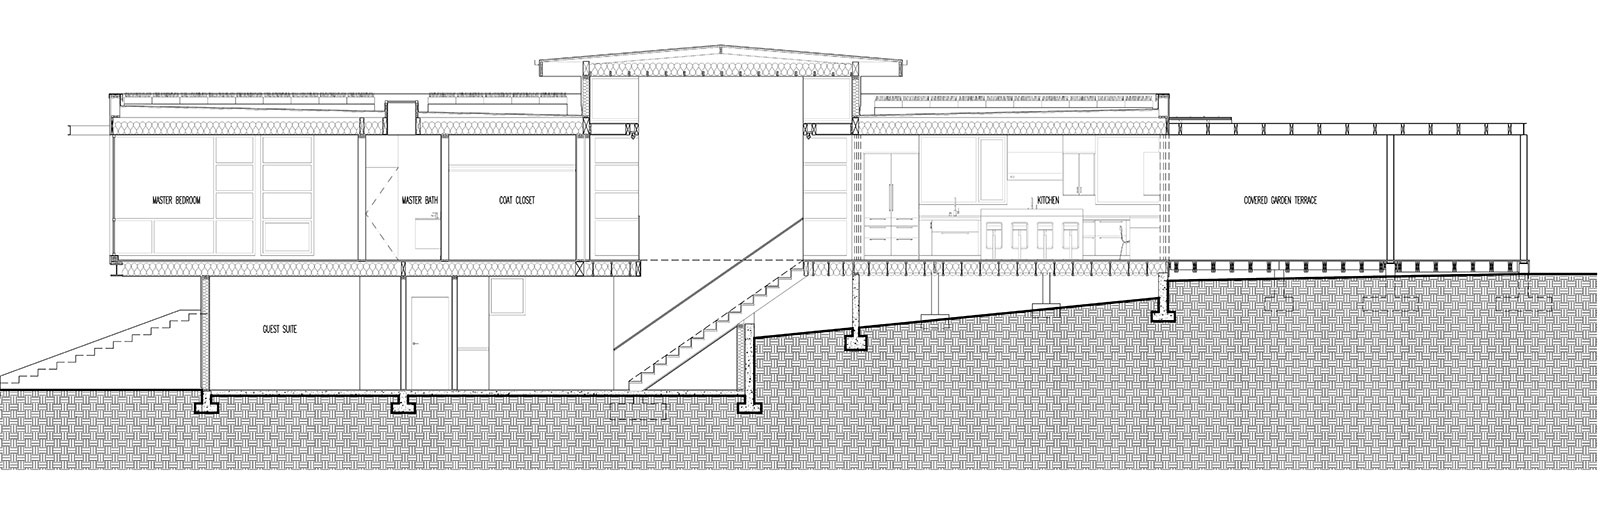 The roof assemblies at the wings on either side use parapet walls and a single ply membrane sloped ¼ vertical to 12 horizontal just like at the